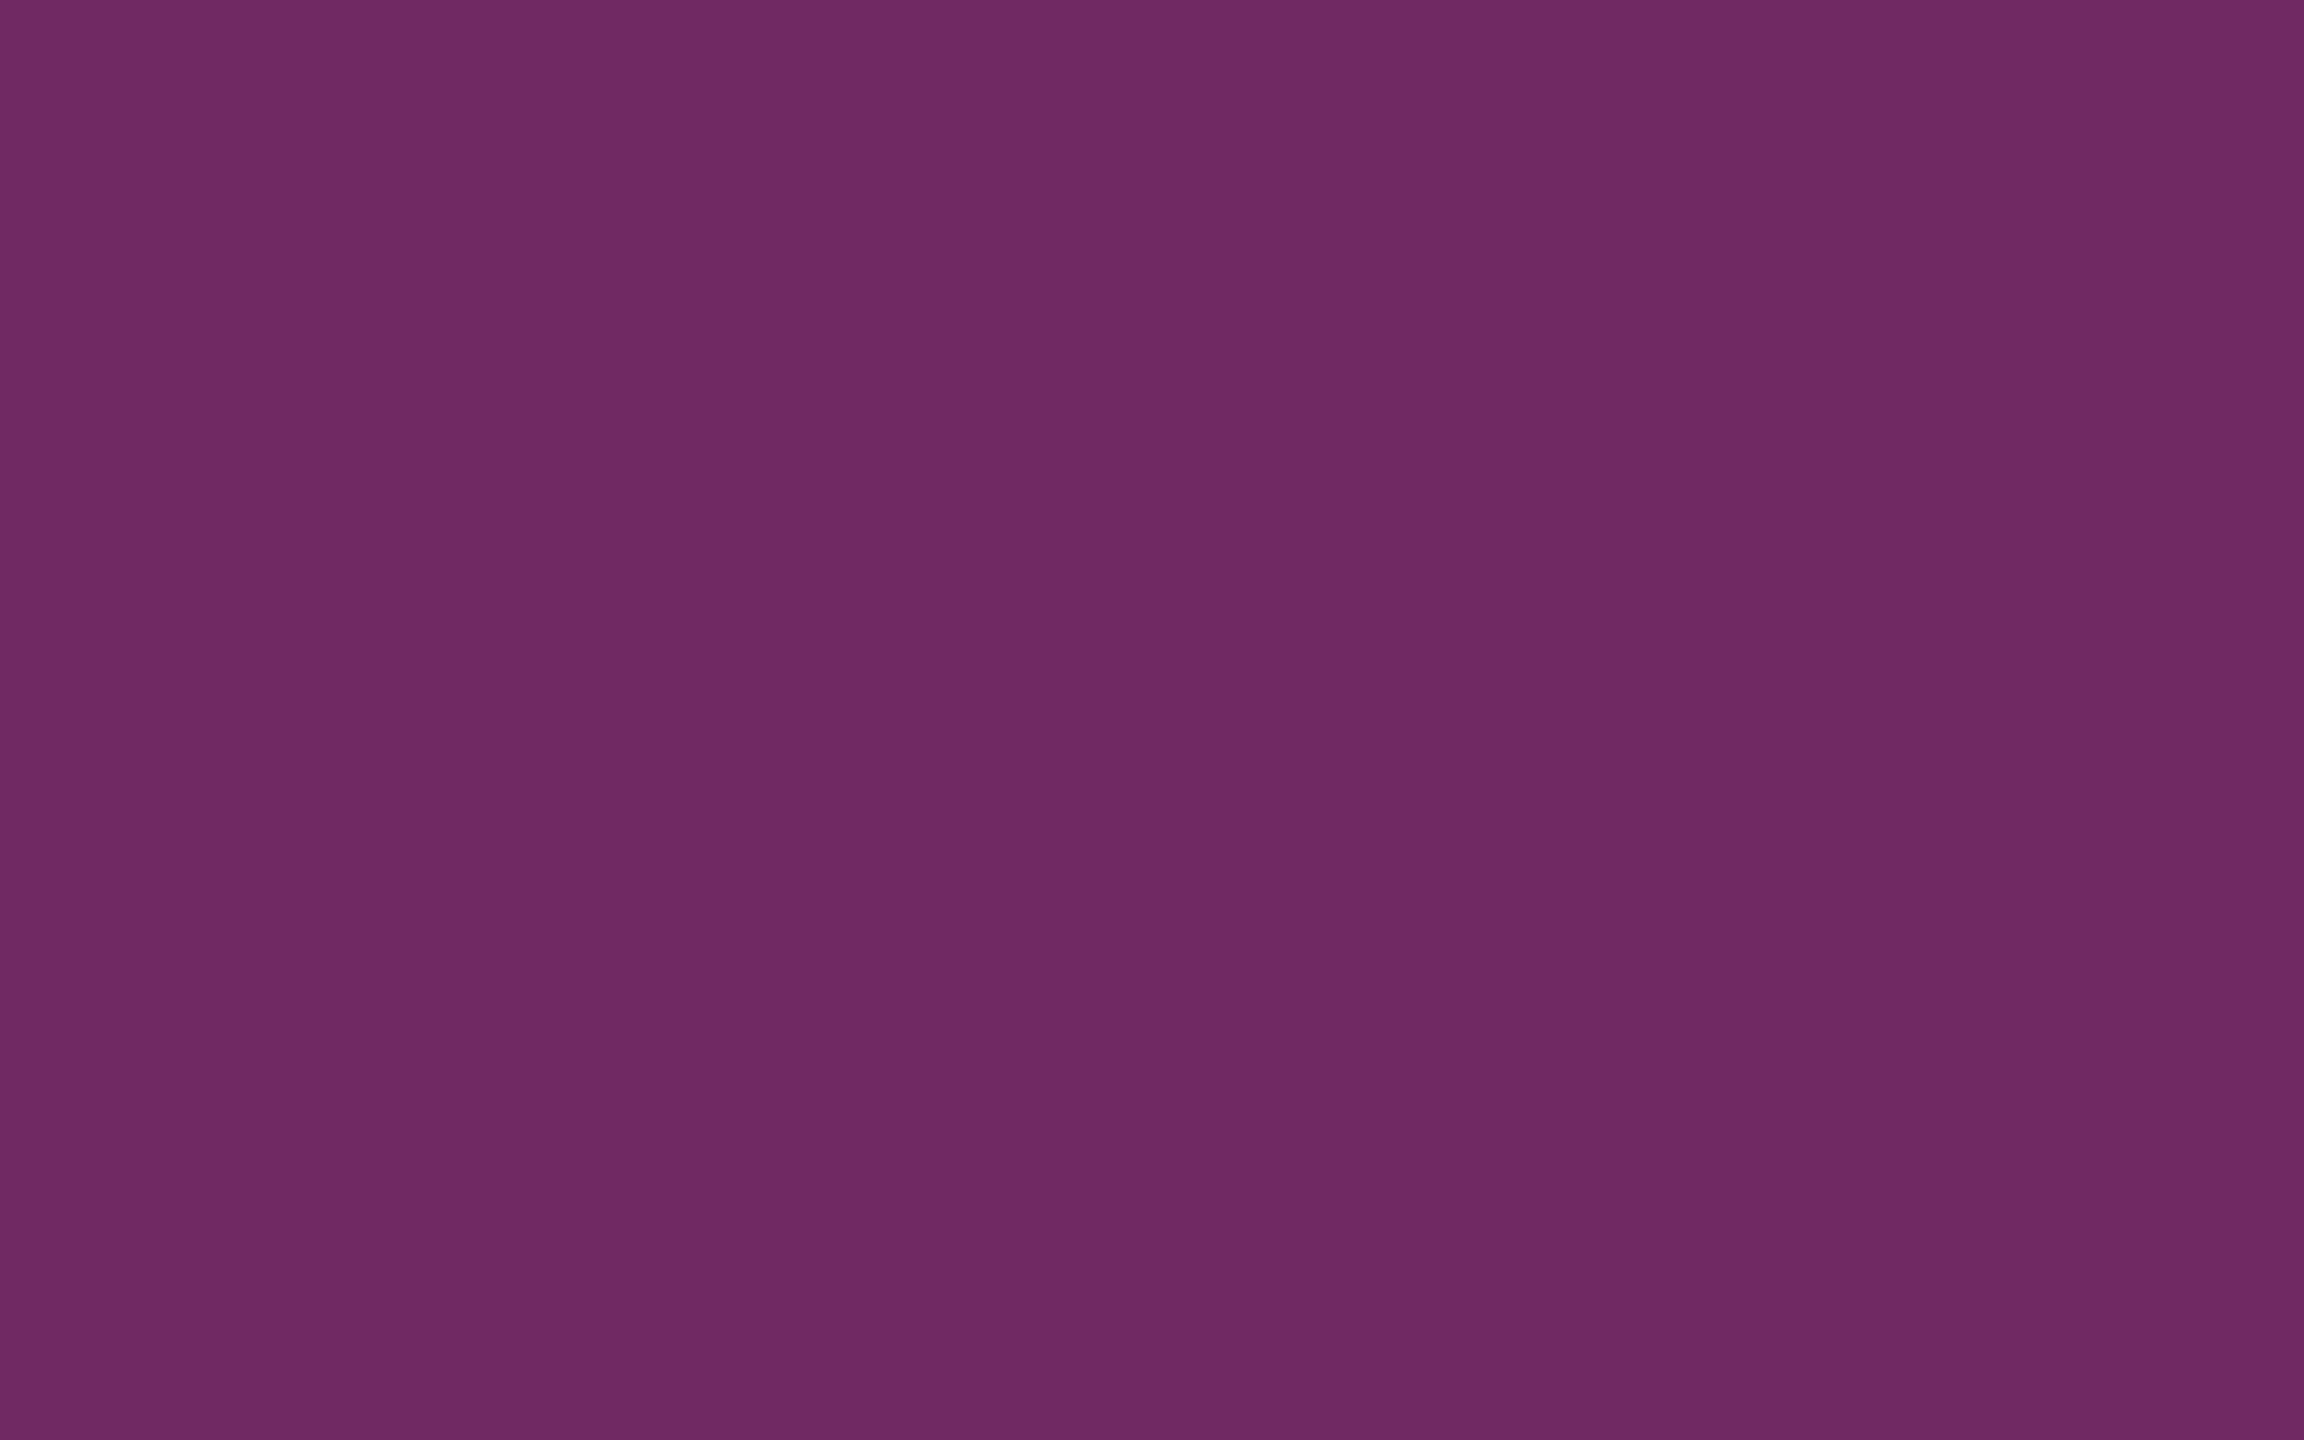 2304x1440 Byzantium Solid Color Background